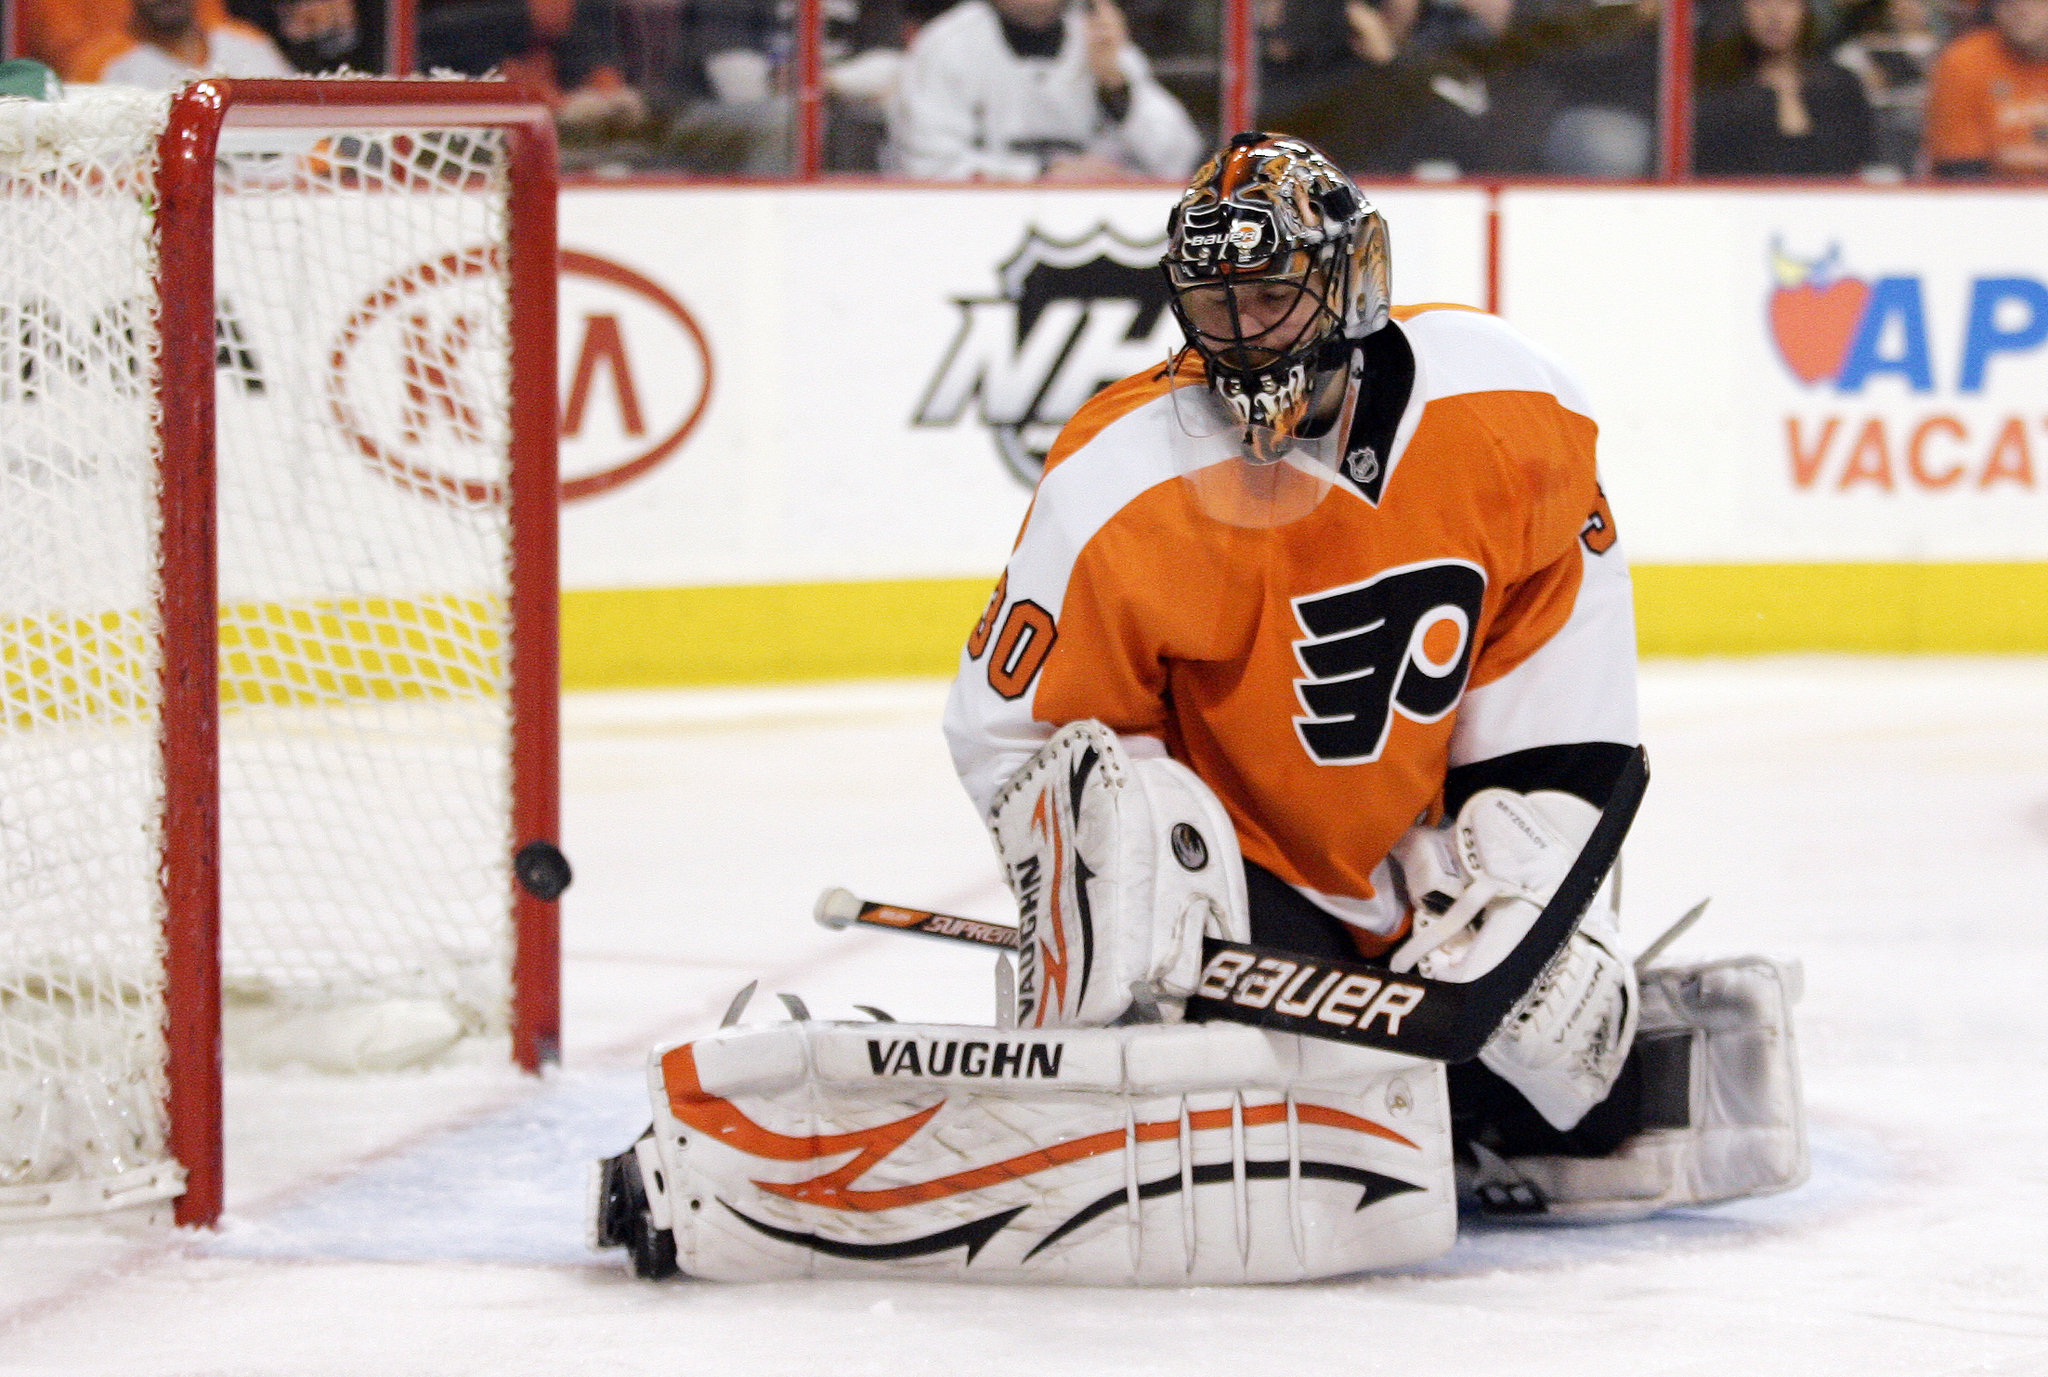 Duchesne High School Ice Hockey Ilya Bryzgalov Extends Flyers History Of Goalie Misery Pennlive